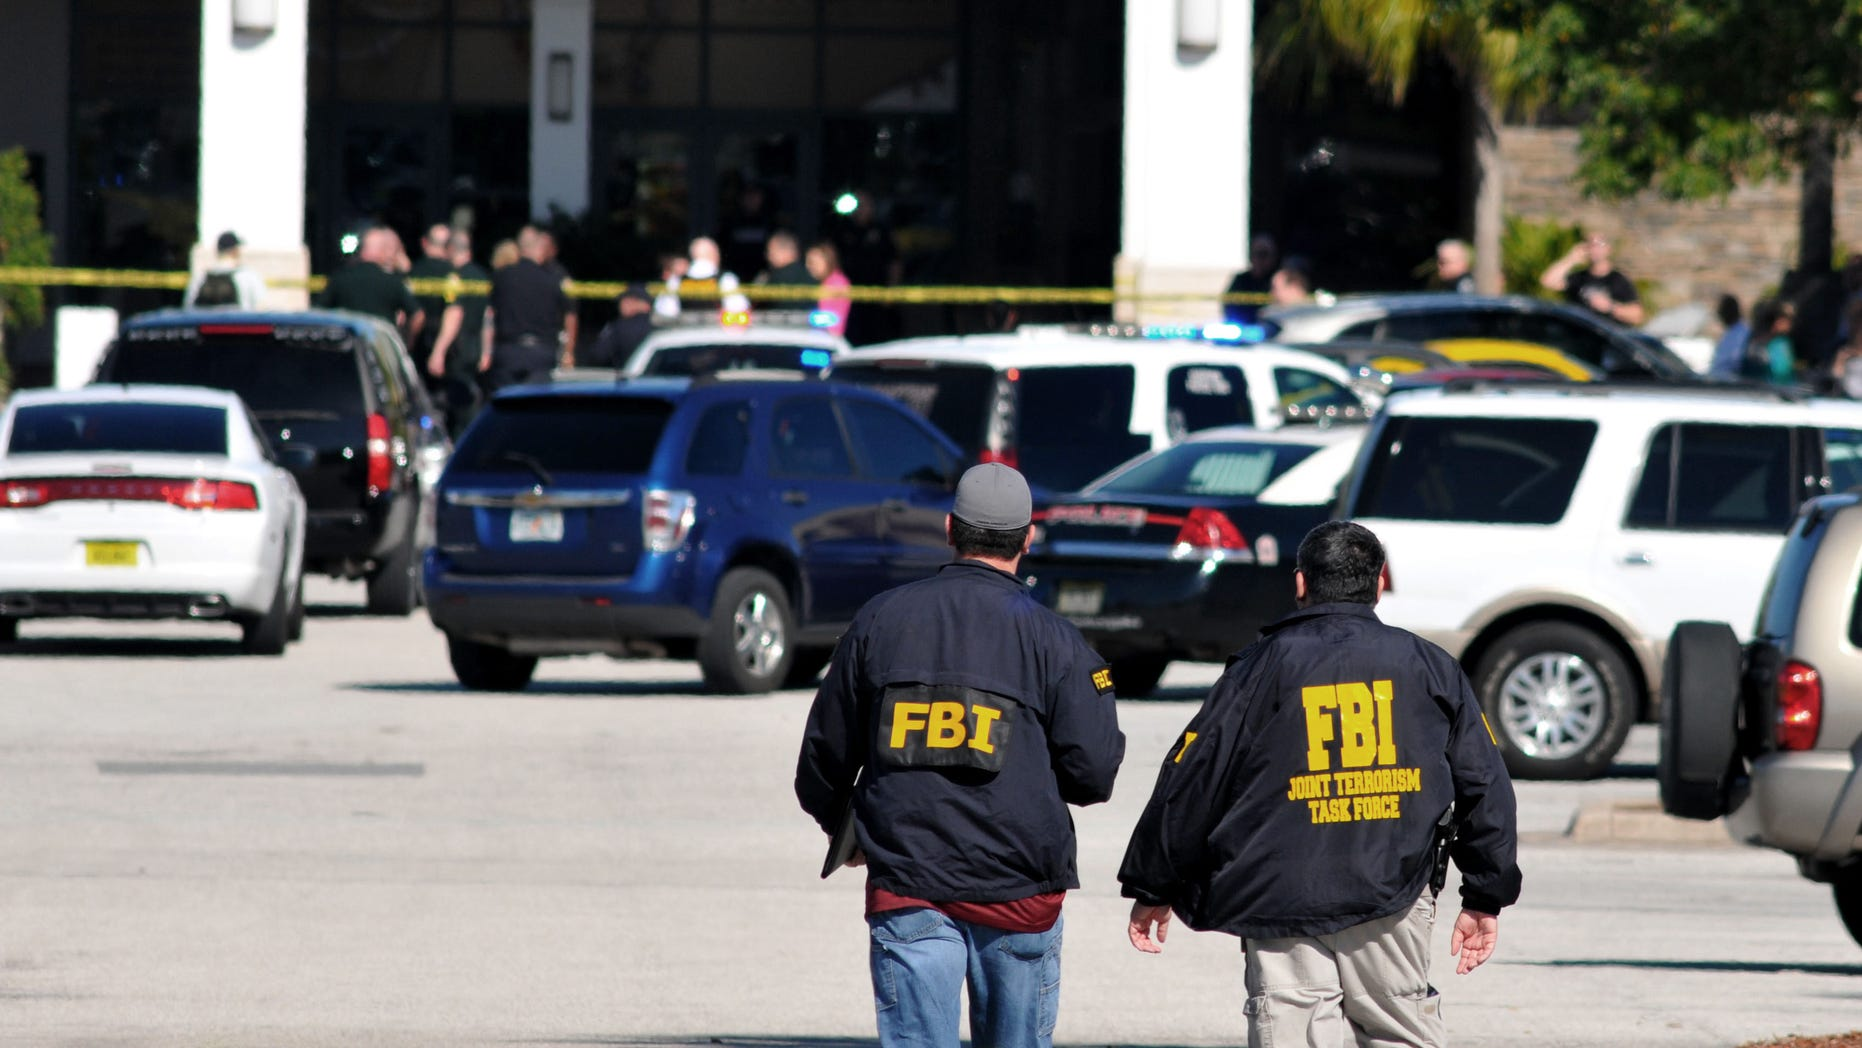 "Law enforcement including the FBI respond to the scene of a shooting at the Melbourne Square Mall on Saturday, Jan 17, 2015 in Melbourne, Fla. Melbourne Police have confirmed that the shooting Saturday morning at the mall has left two people dead and one injured from a gunshot wound. Police say the injured victim is hospitalized in stable condition and cooperating with investigators. After responding to reports around 9:30 a.m. of multiple shots fired inside the mall, police tweeted that the ""shooter is contained."" (AP Photo/Florida Today, Malcolm Denemark)  NO SALES"